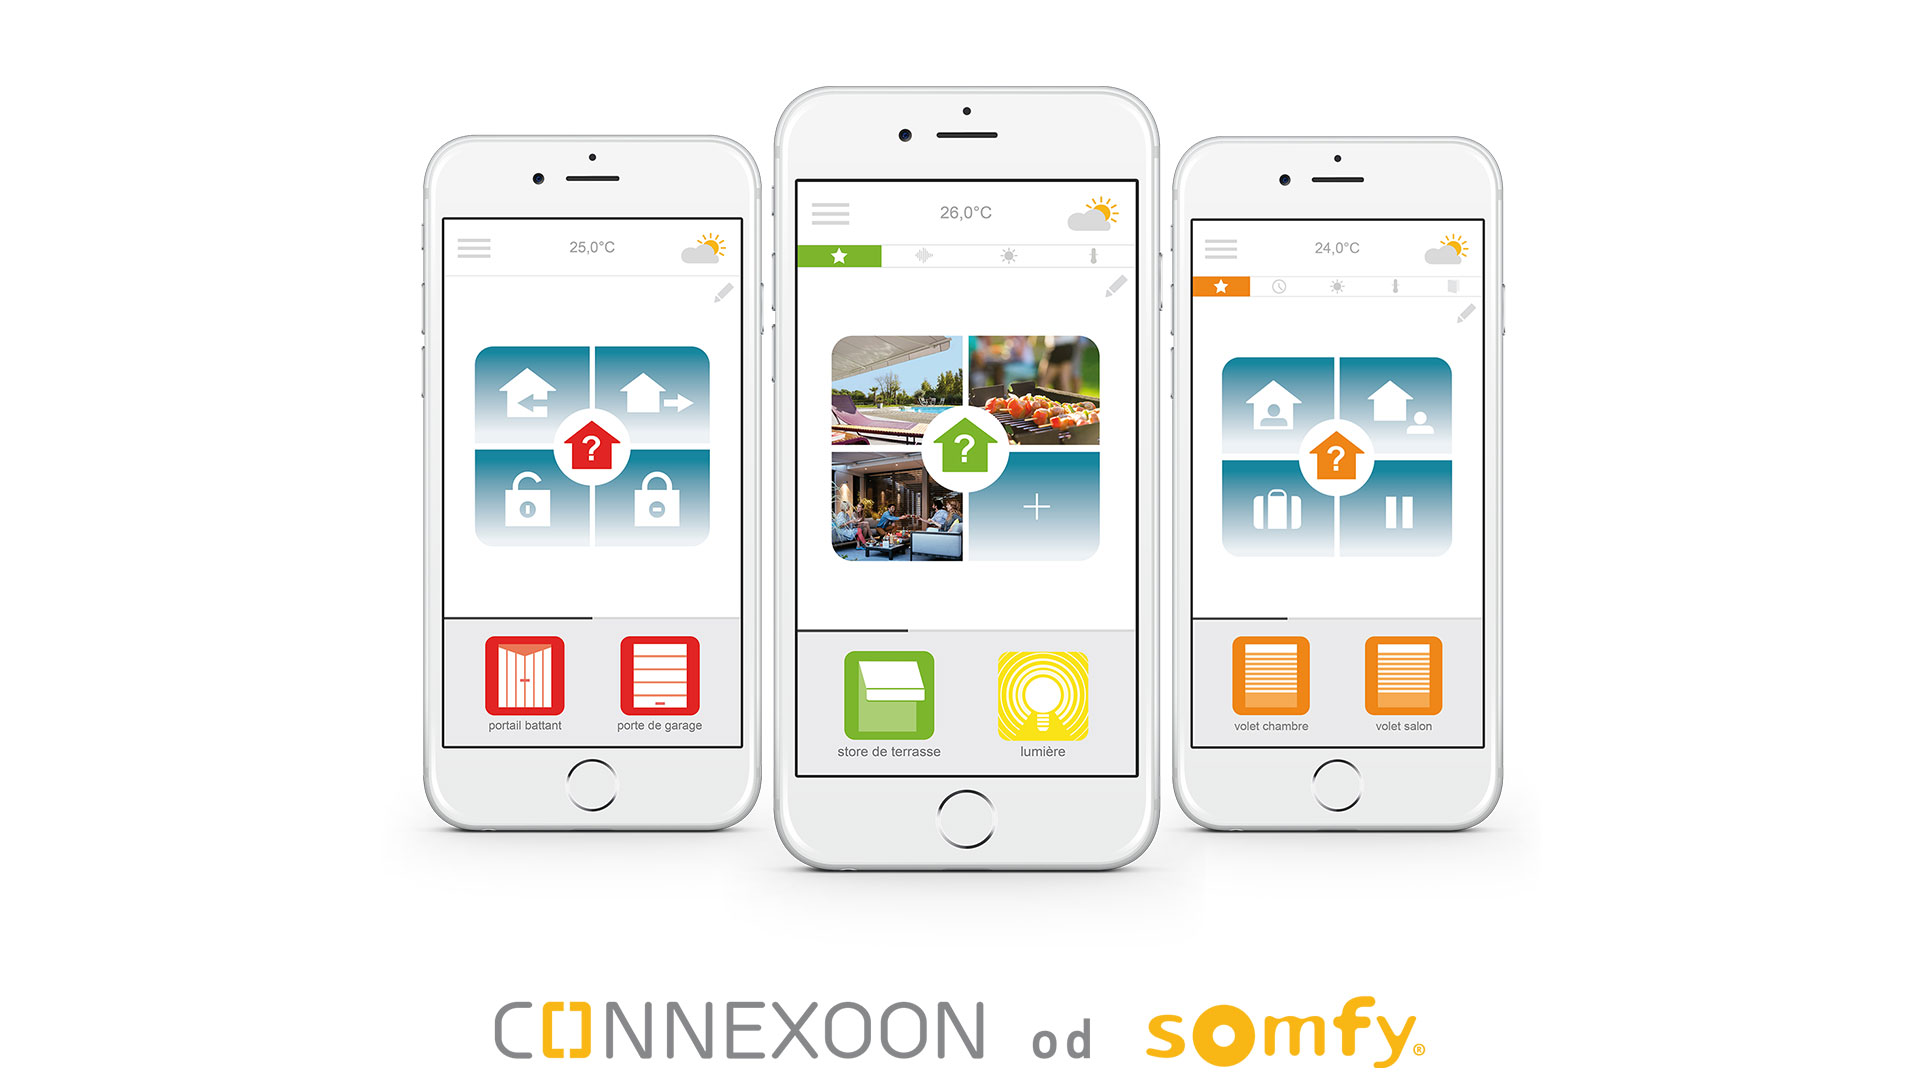 sesons_somfy_connexoon